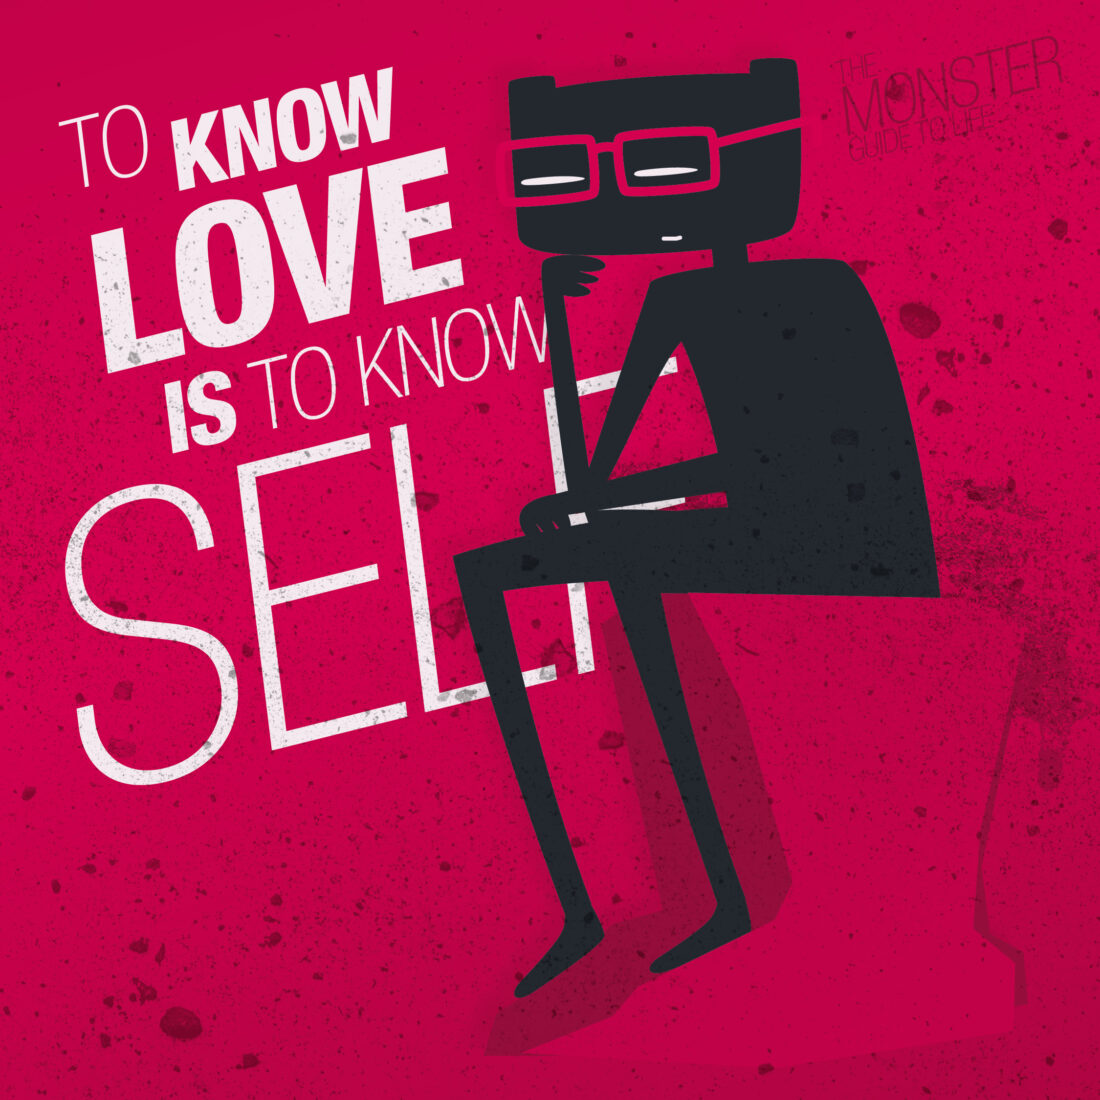 Th know love, is to know self illustration